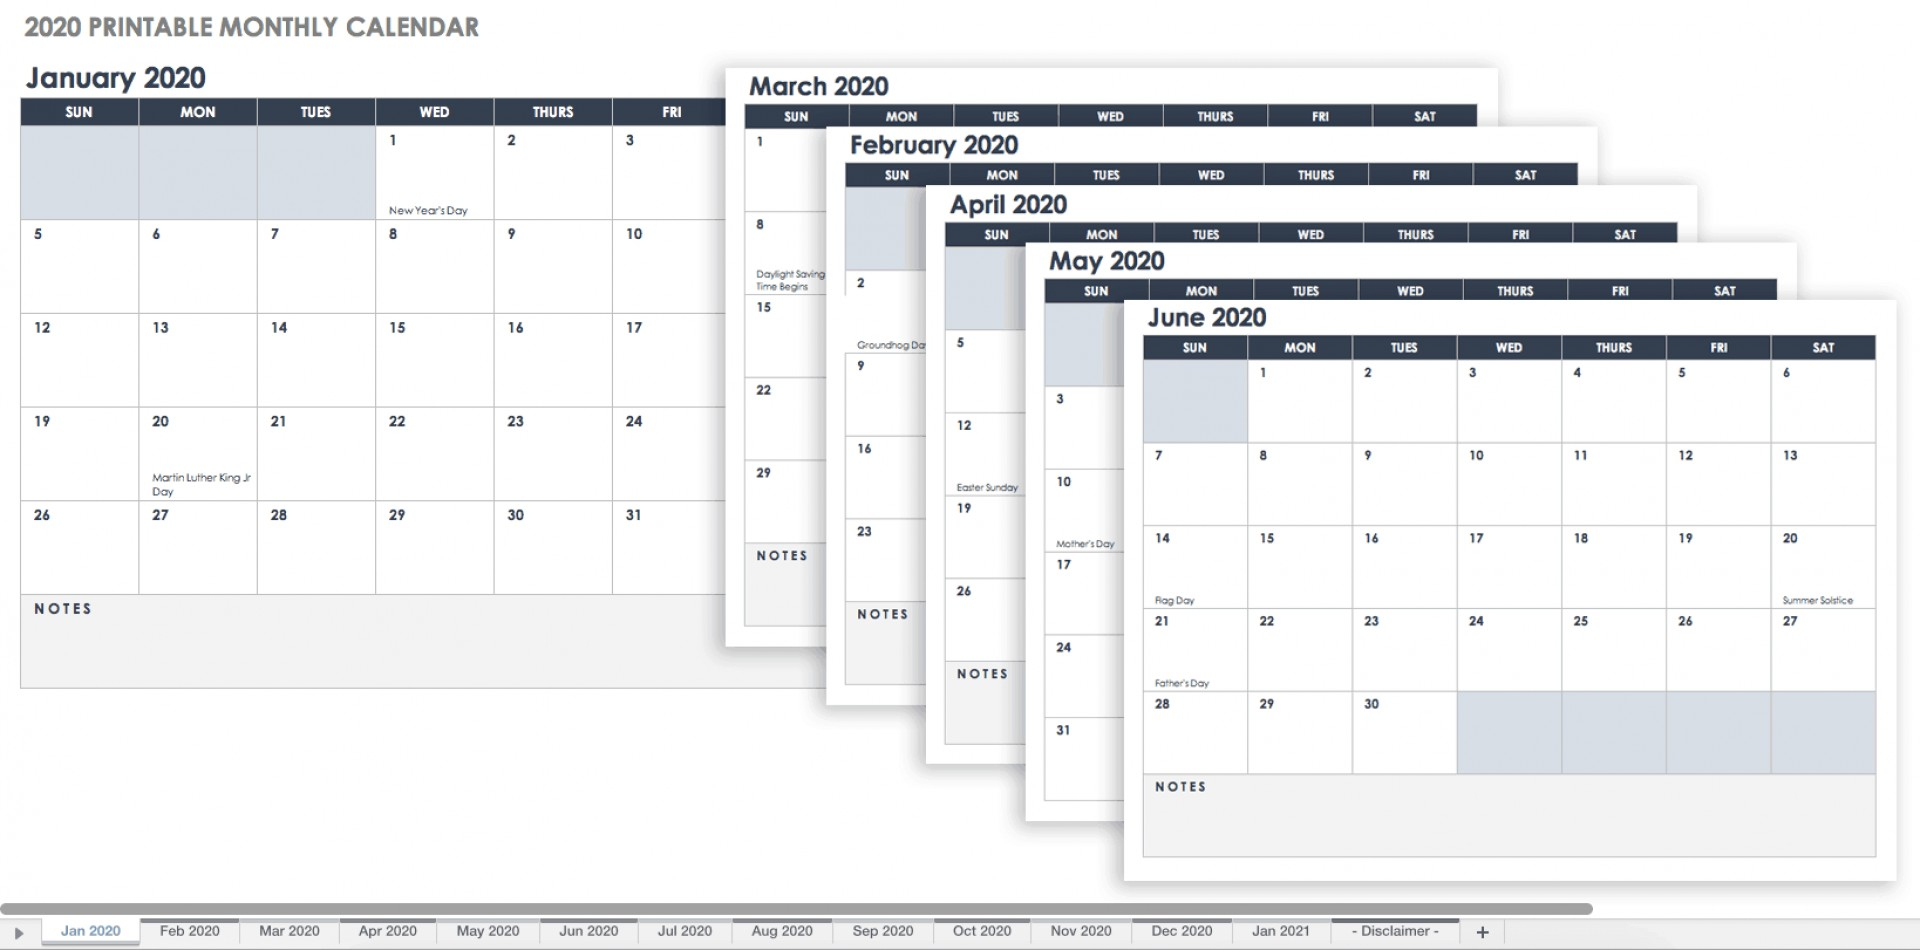 013 Vertex42 Blank Excel Calendar Template Free Fearsome pertaining to Vertex42 Monthly Calendar